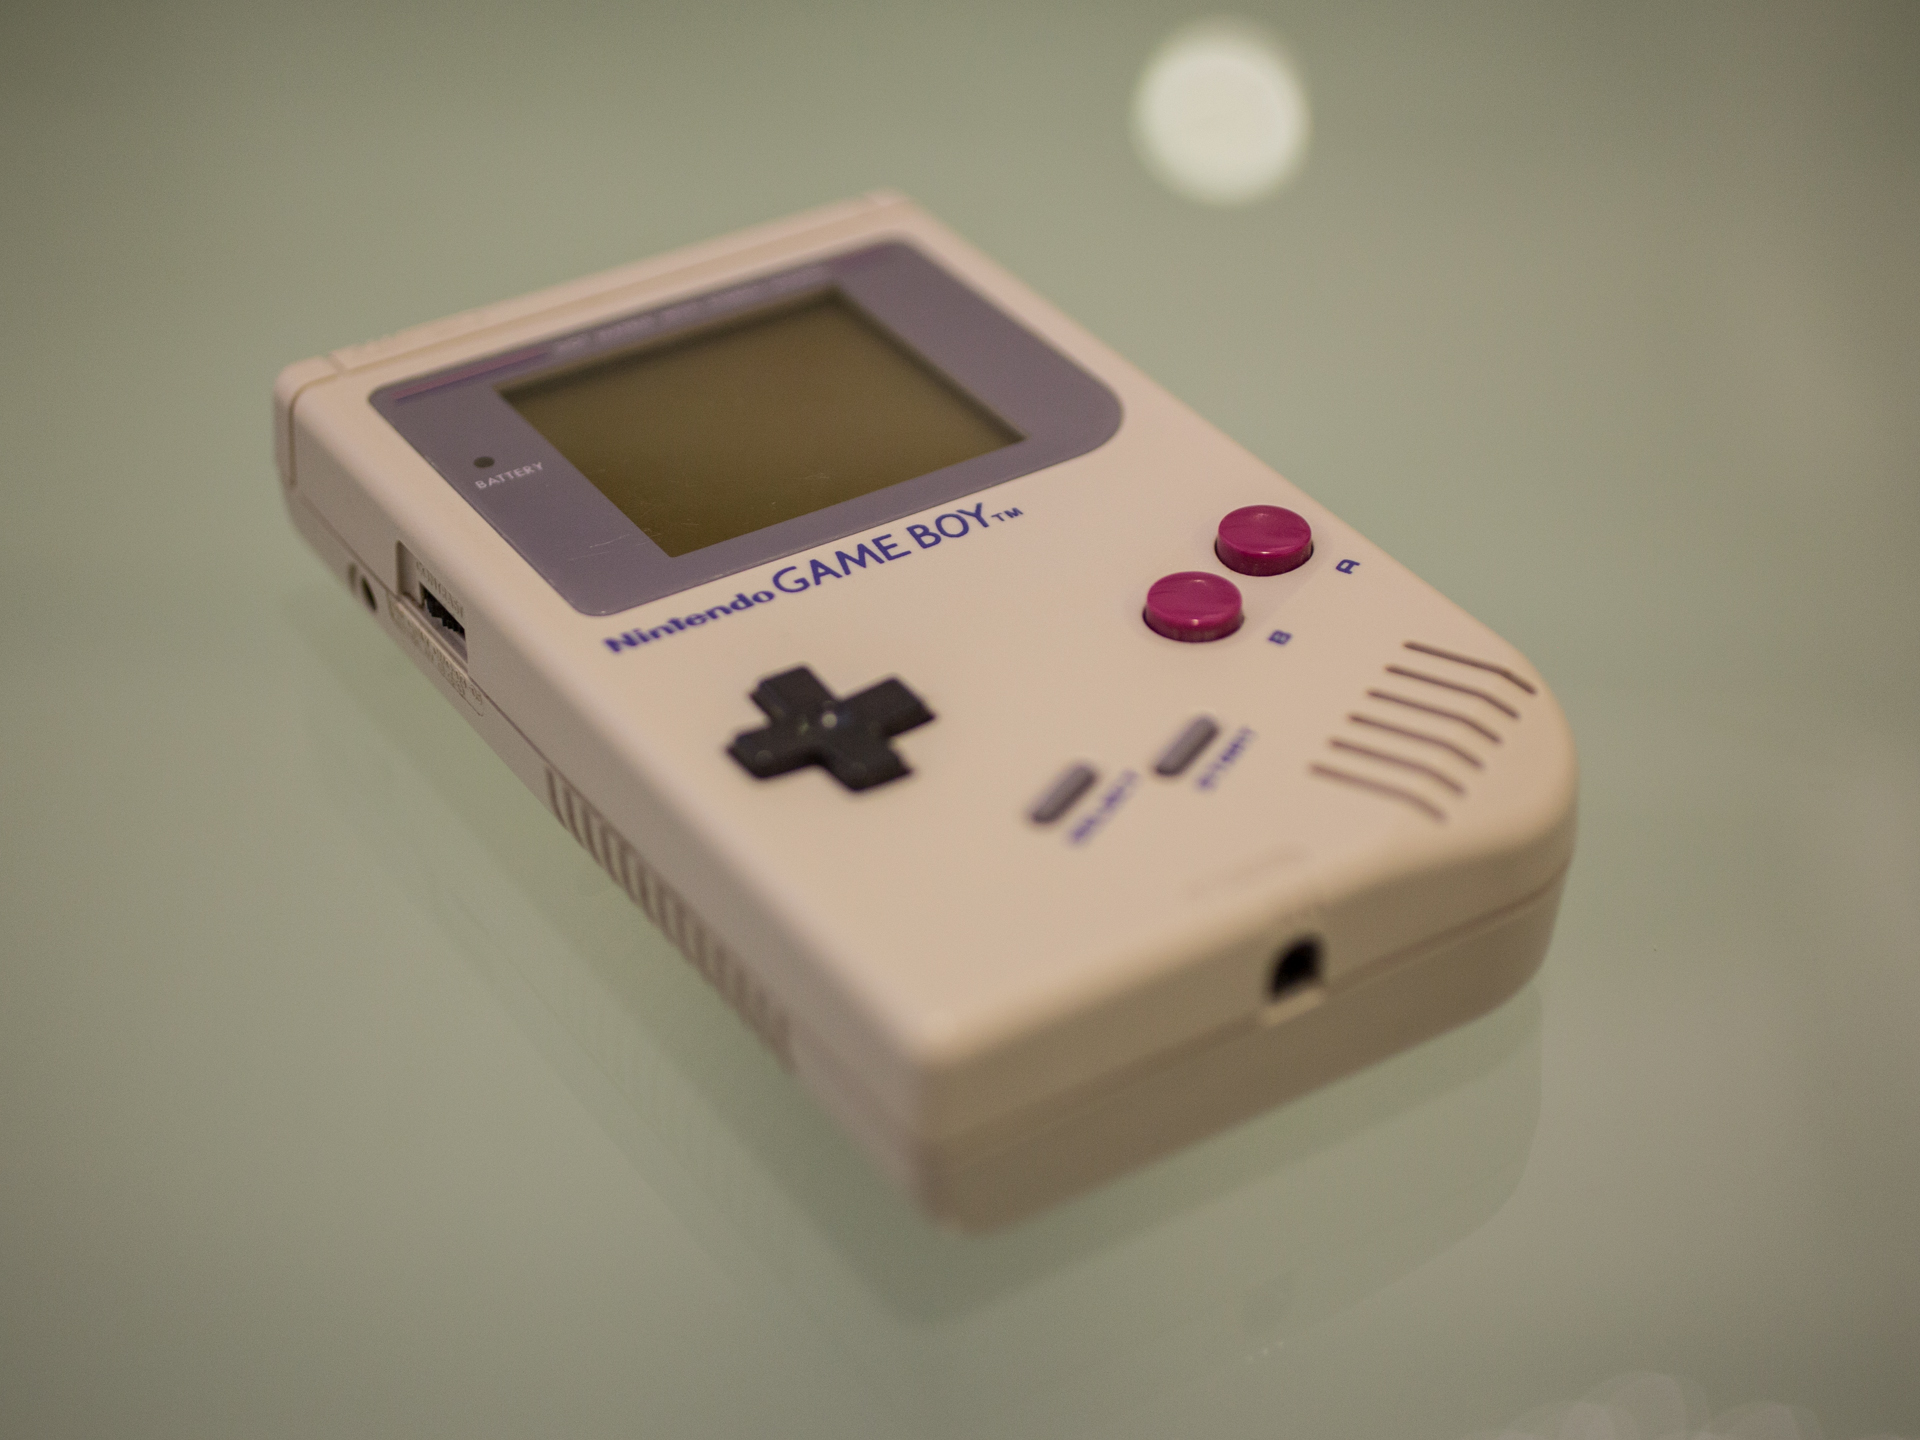 <p>Shigeru Miyamoto, creator of Mario and other video game characters for Nintendo, holds a Game Boy.</p>